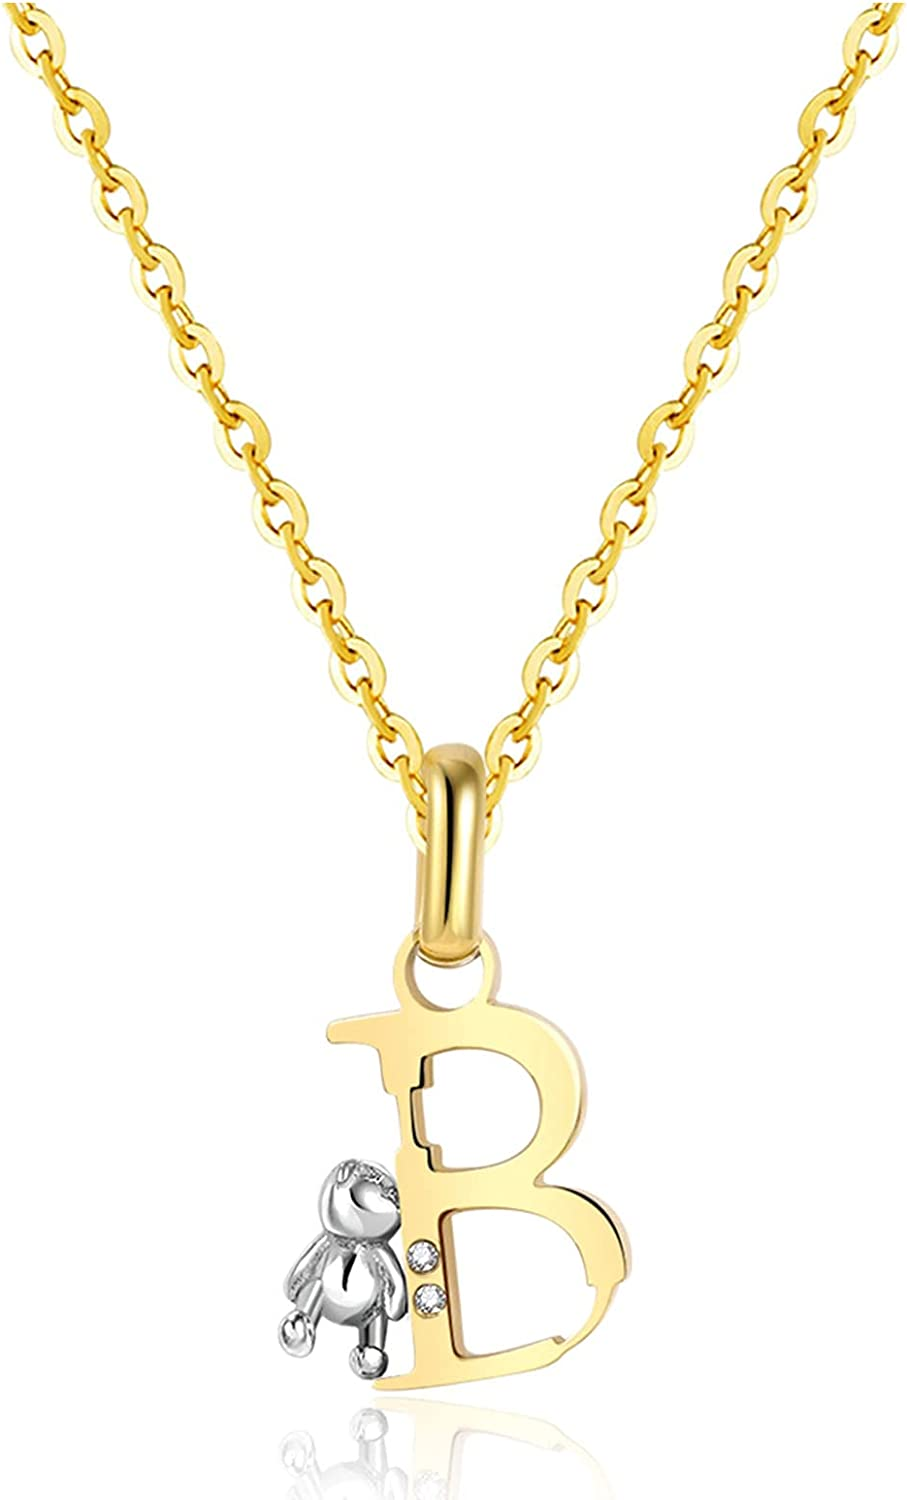 CILILI 18K Gold Filled Initial Bear Pendant with Cubic Zirconia Stainless Steel Chain Necklace Personalized Jewelry Gifts for Girls Women